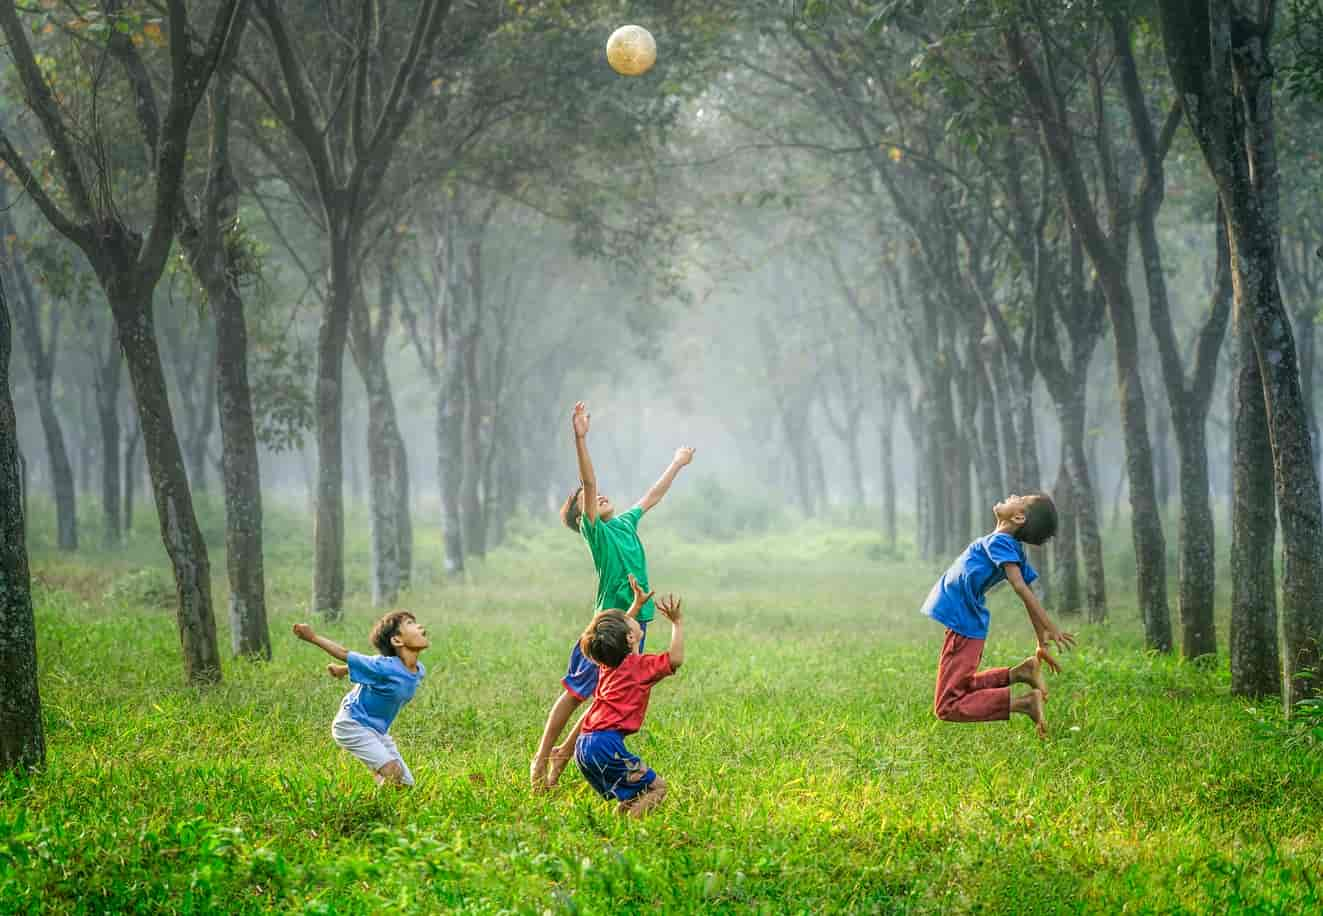 Image | children jumping in the air